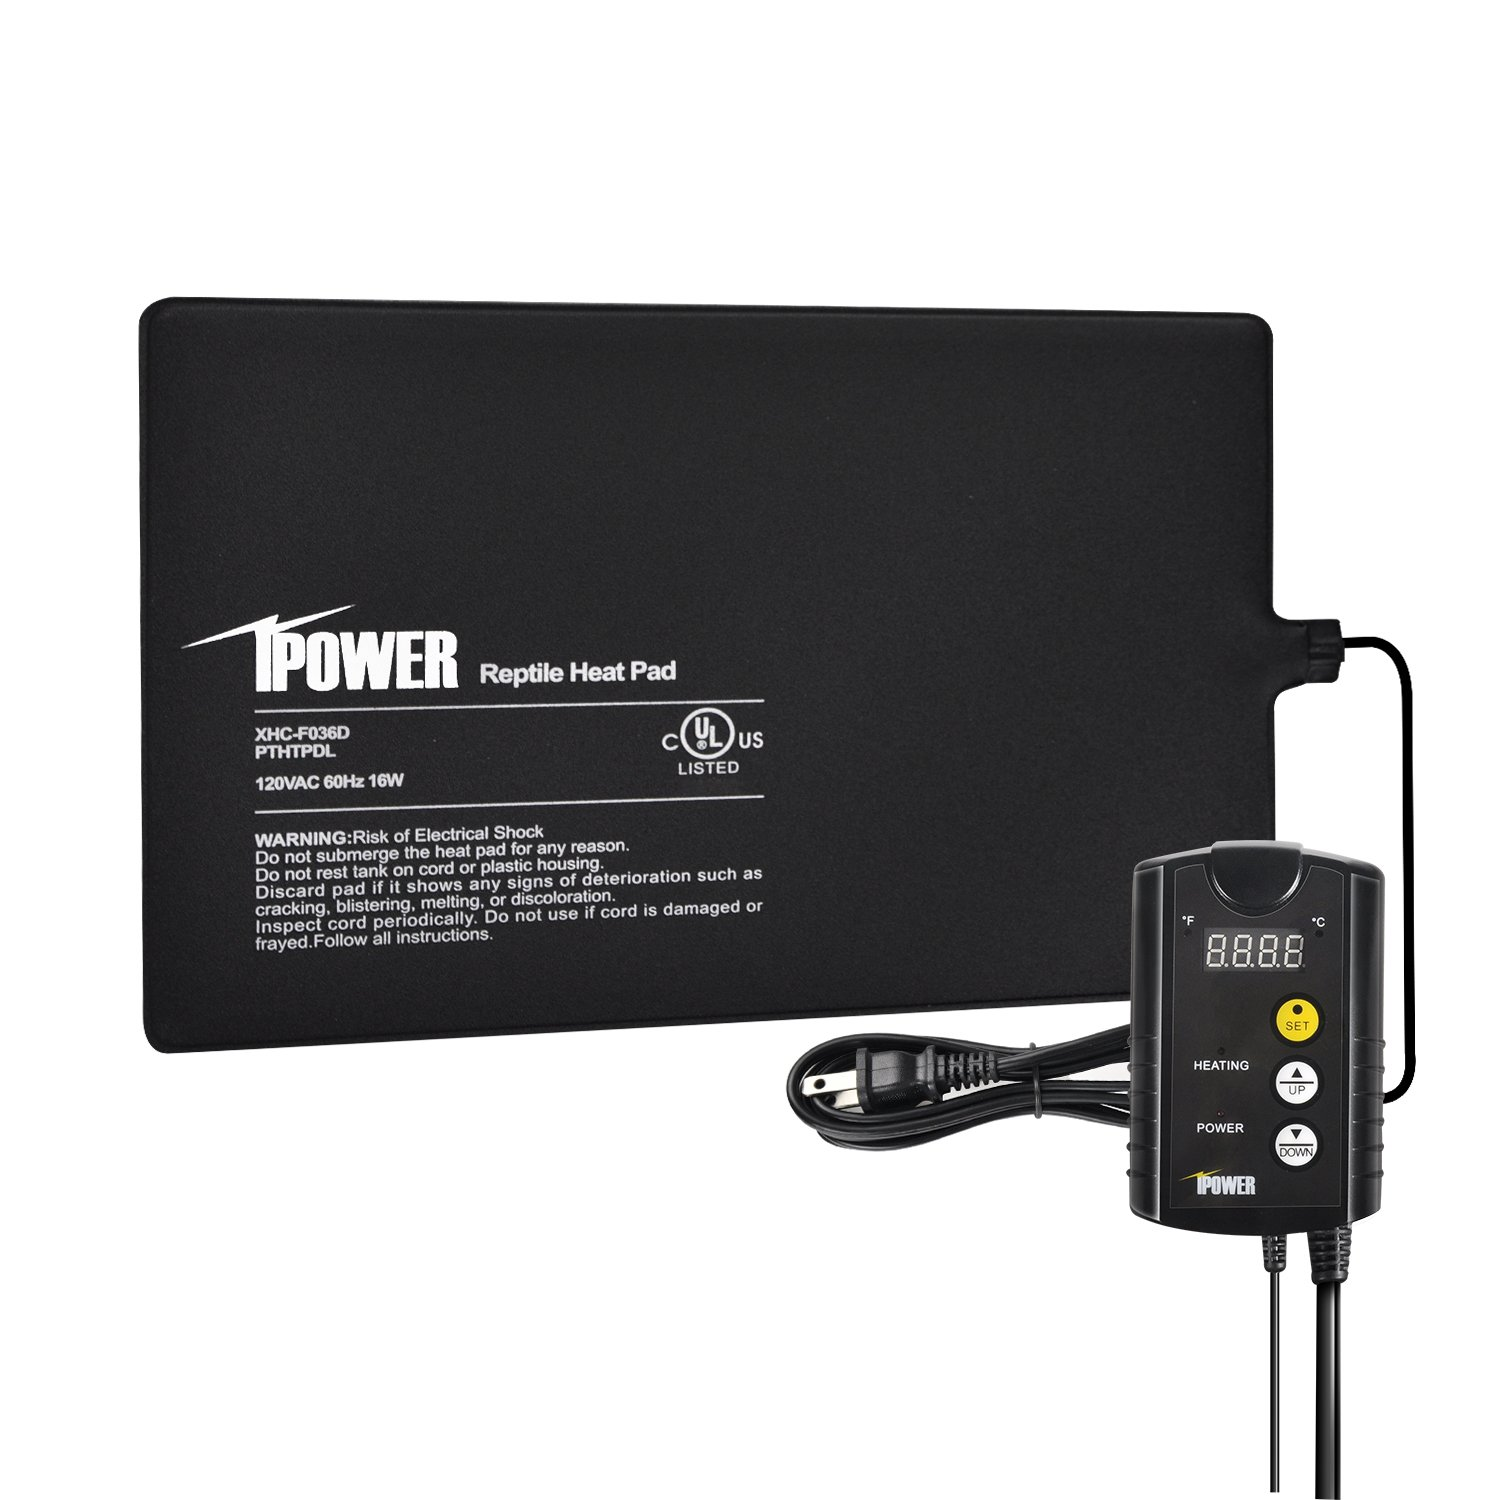 iPower 8''x12'' Under Tank Heat pad and Digital Thermostat Combo Set for Reptiles by iPower